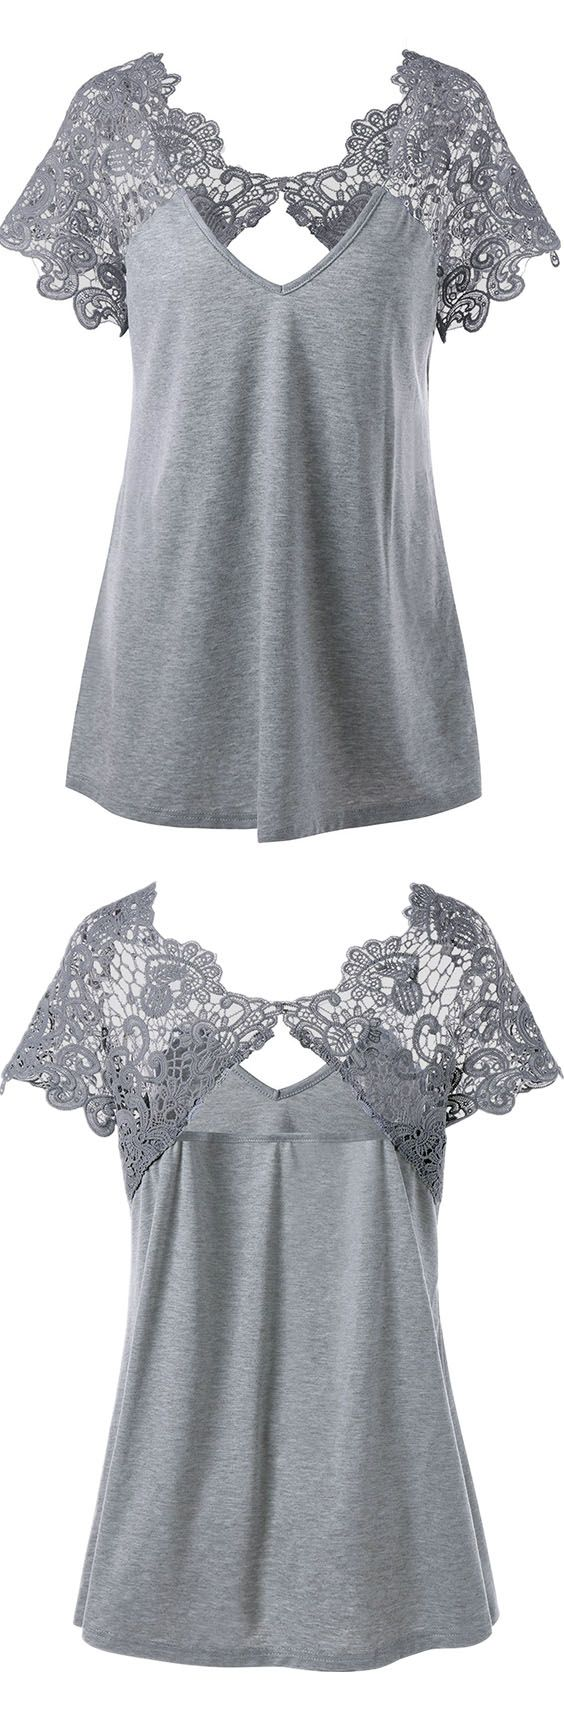 Lace Trim T-Shirt - Gray